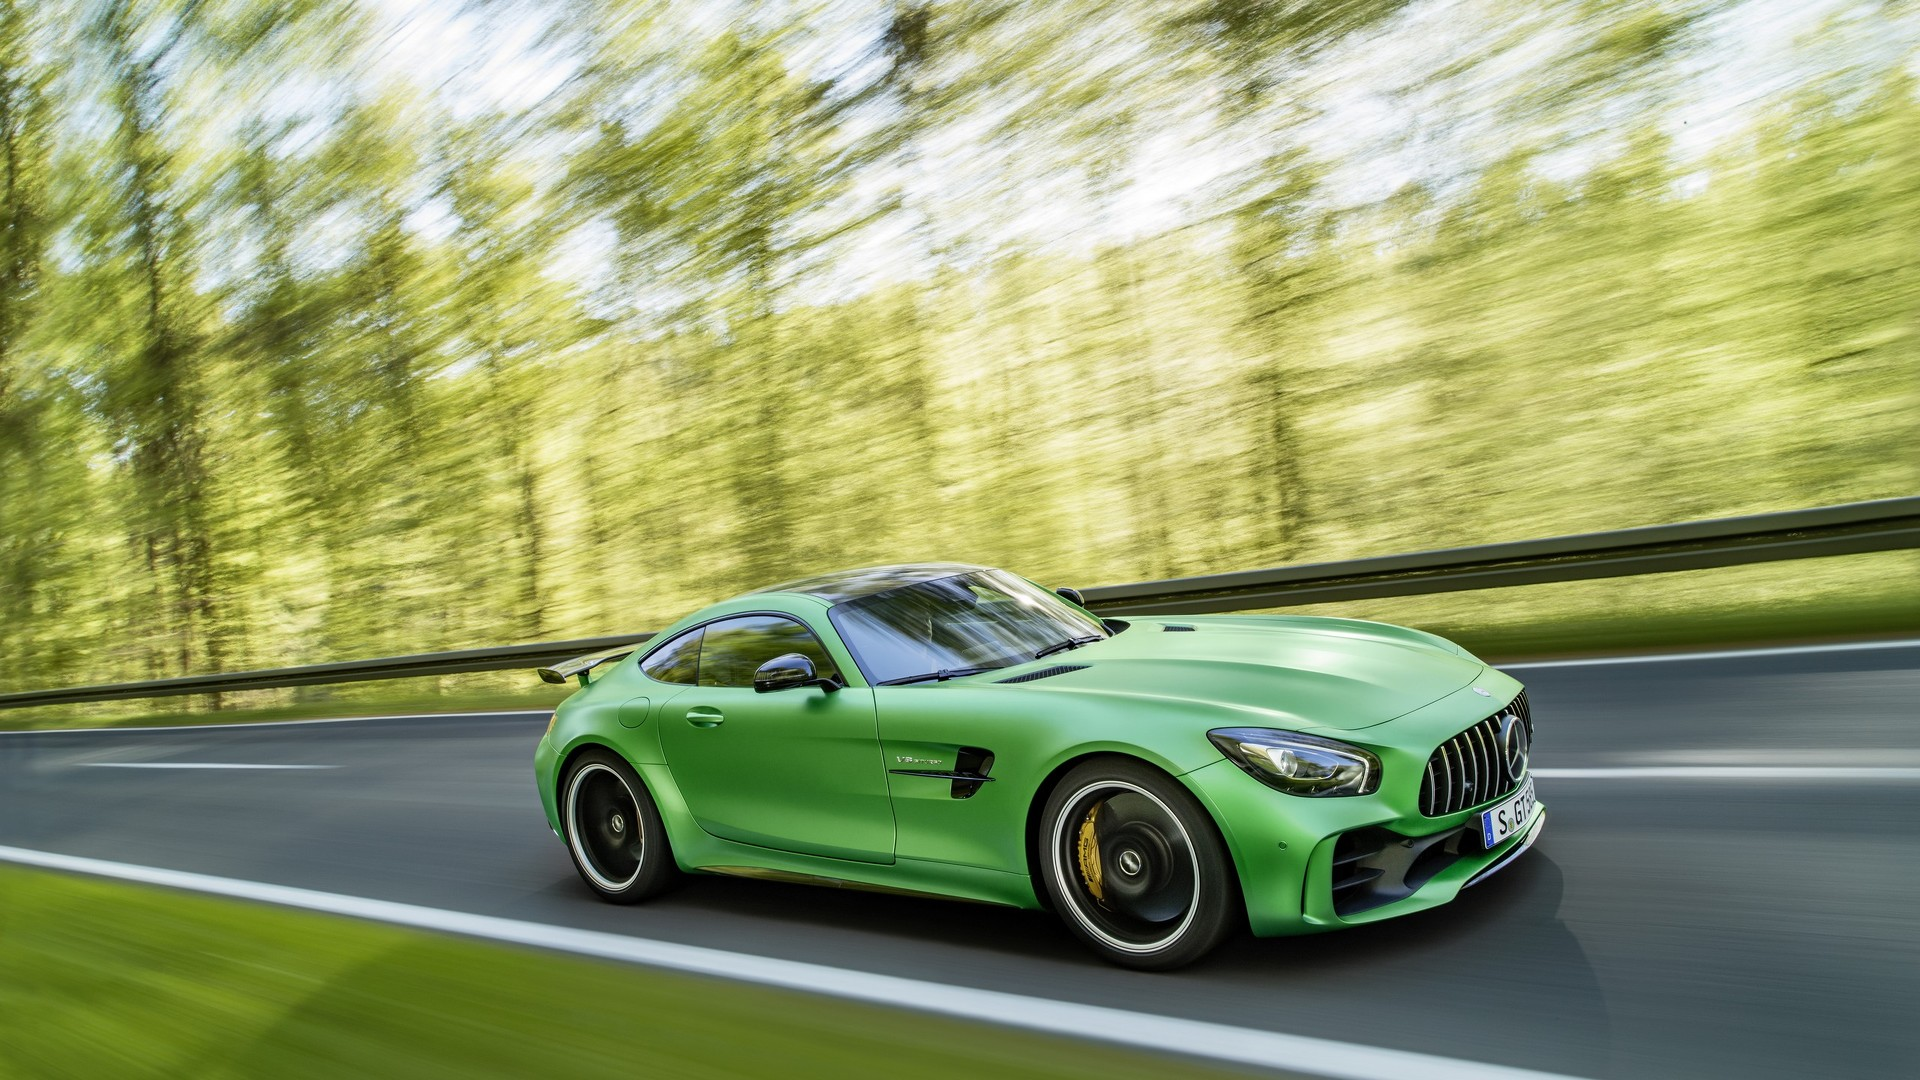 Mercedes Amg Gt R Price Announced For Uk Cheaper Than Mclaren 570s